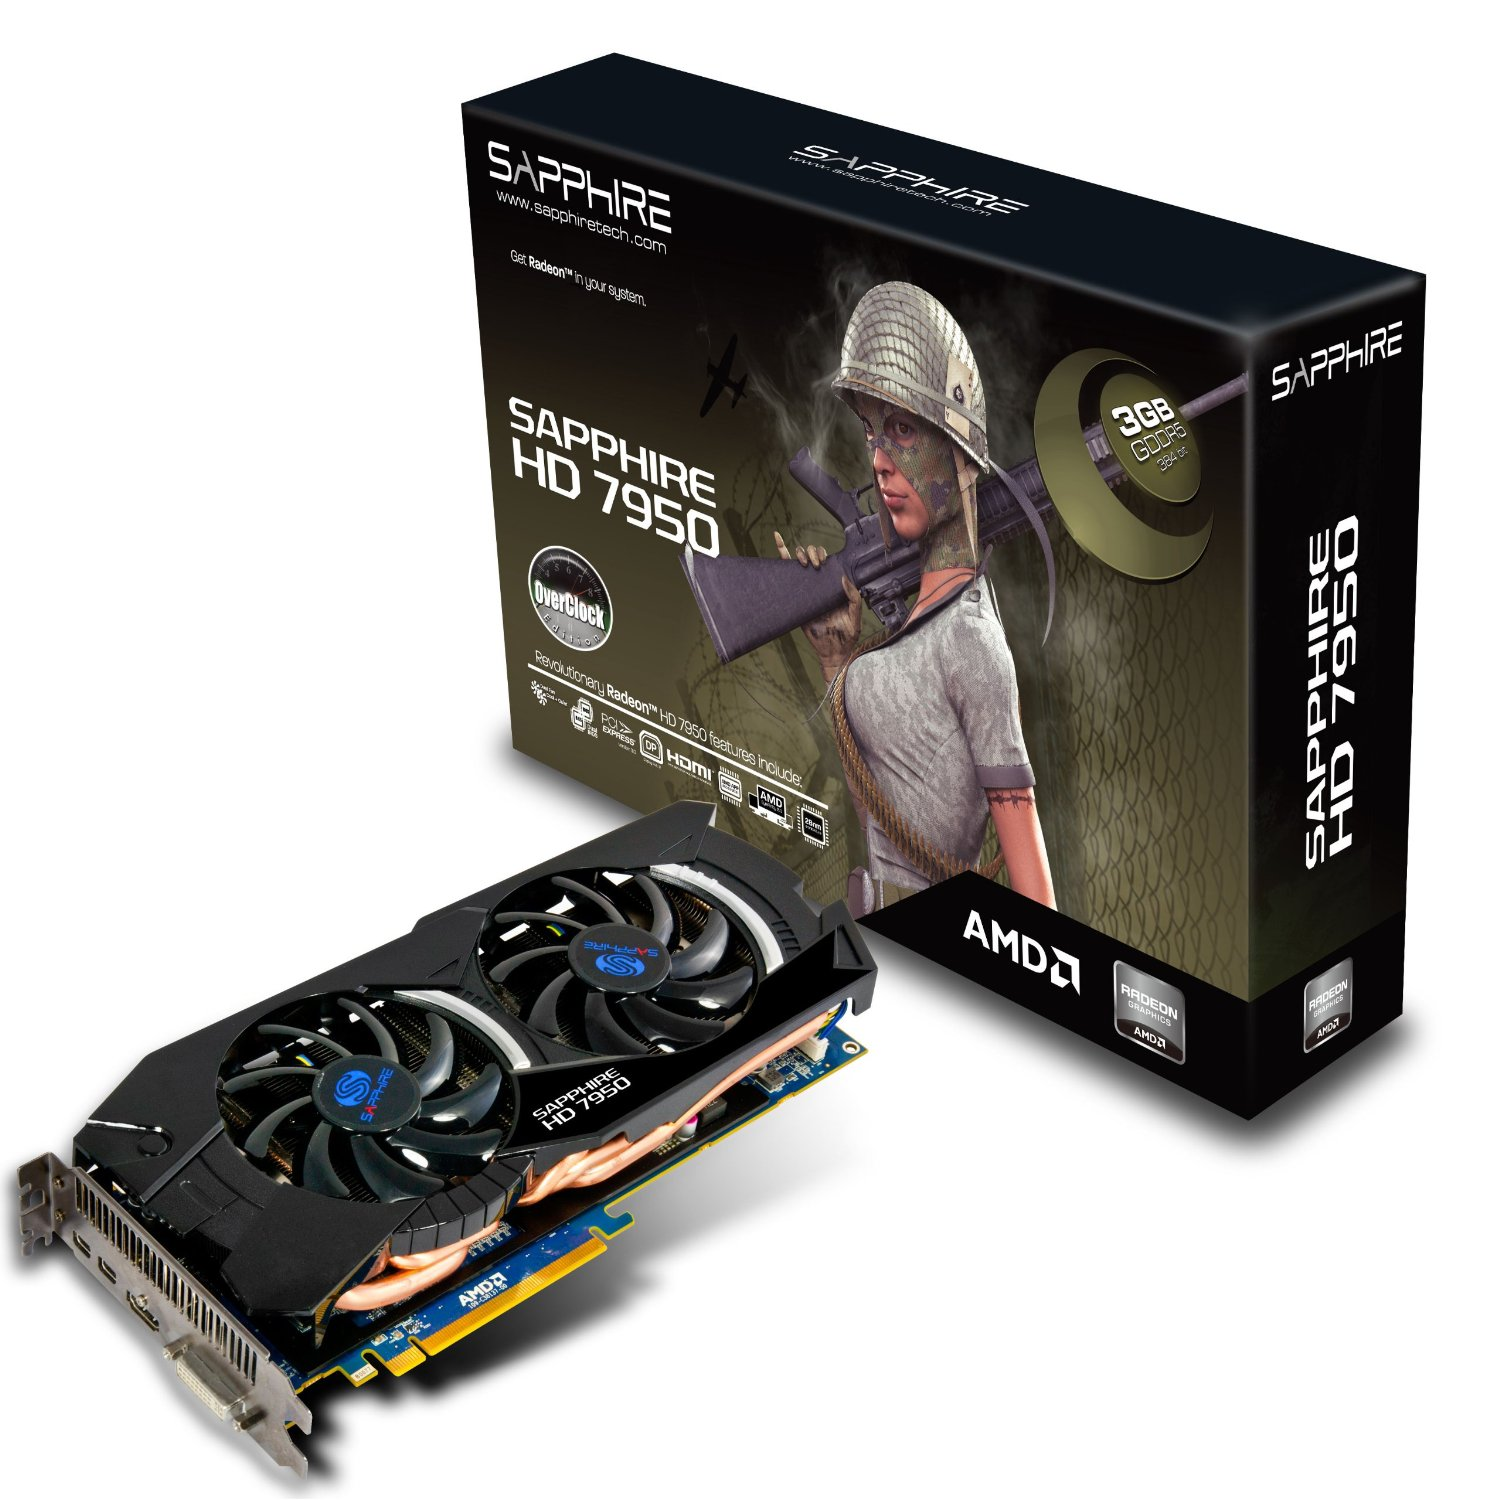 Build A Gaming Pc Under